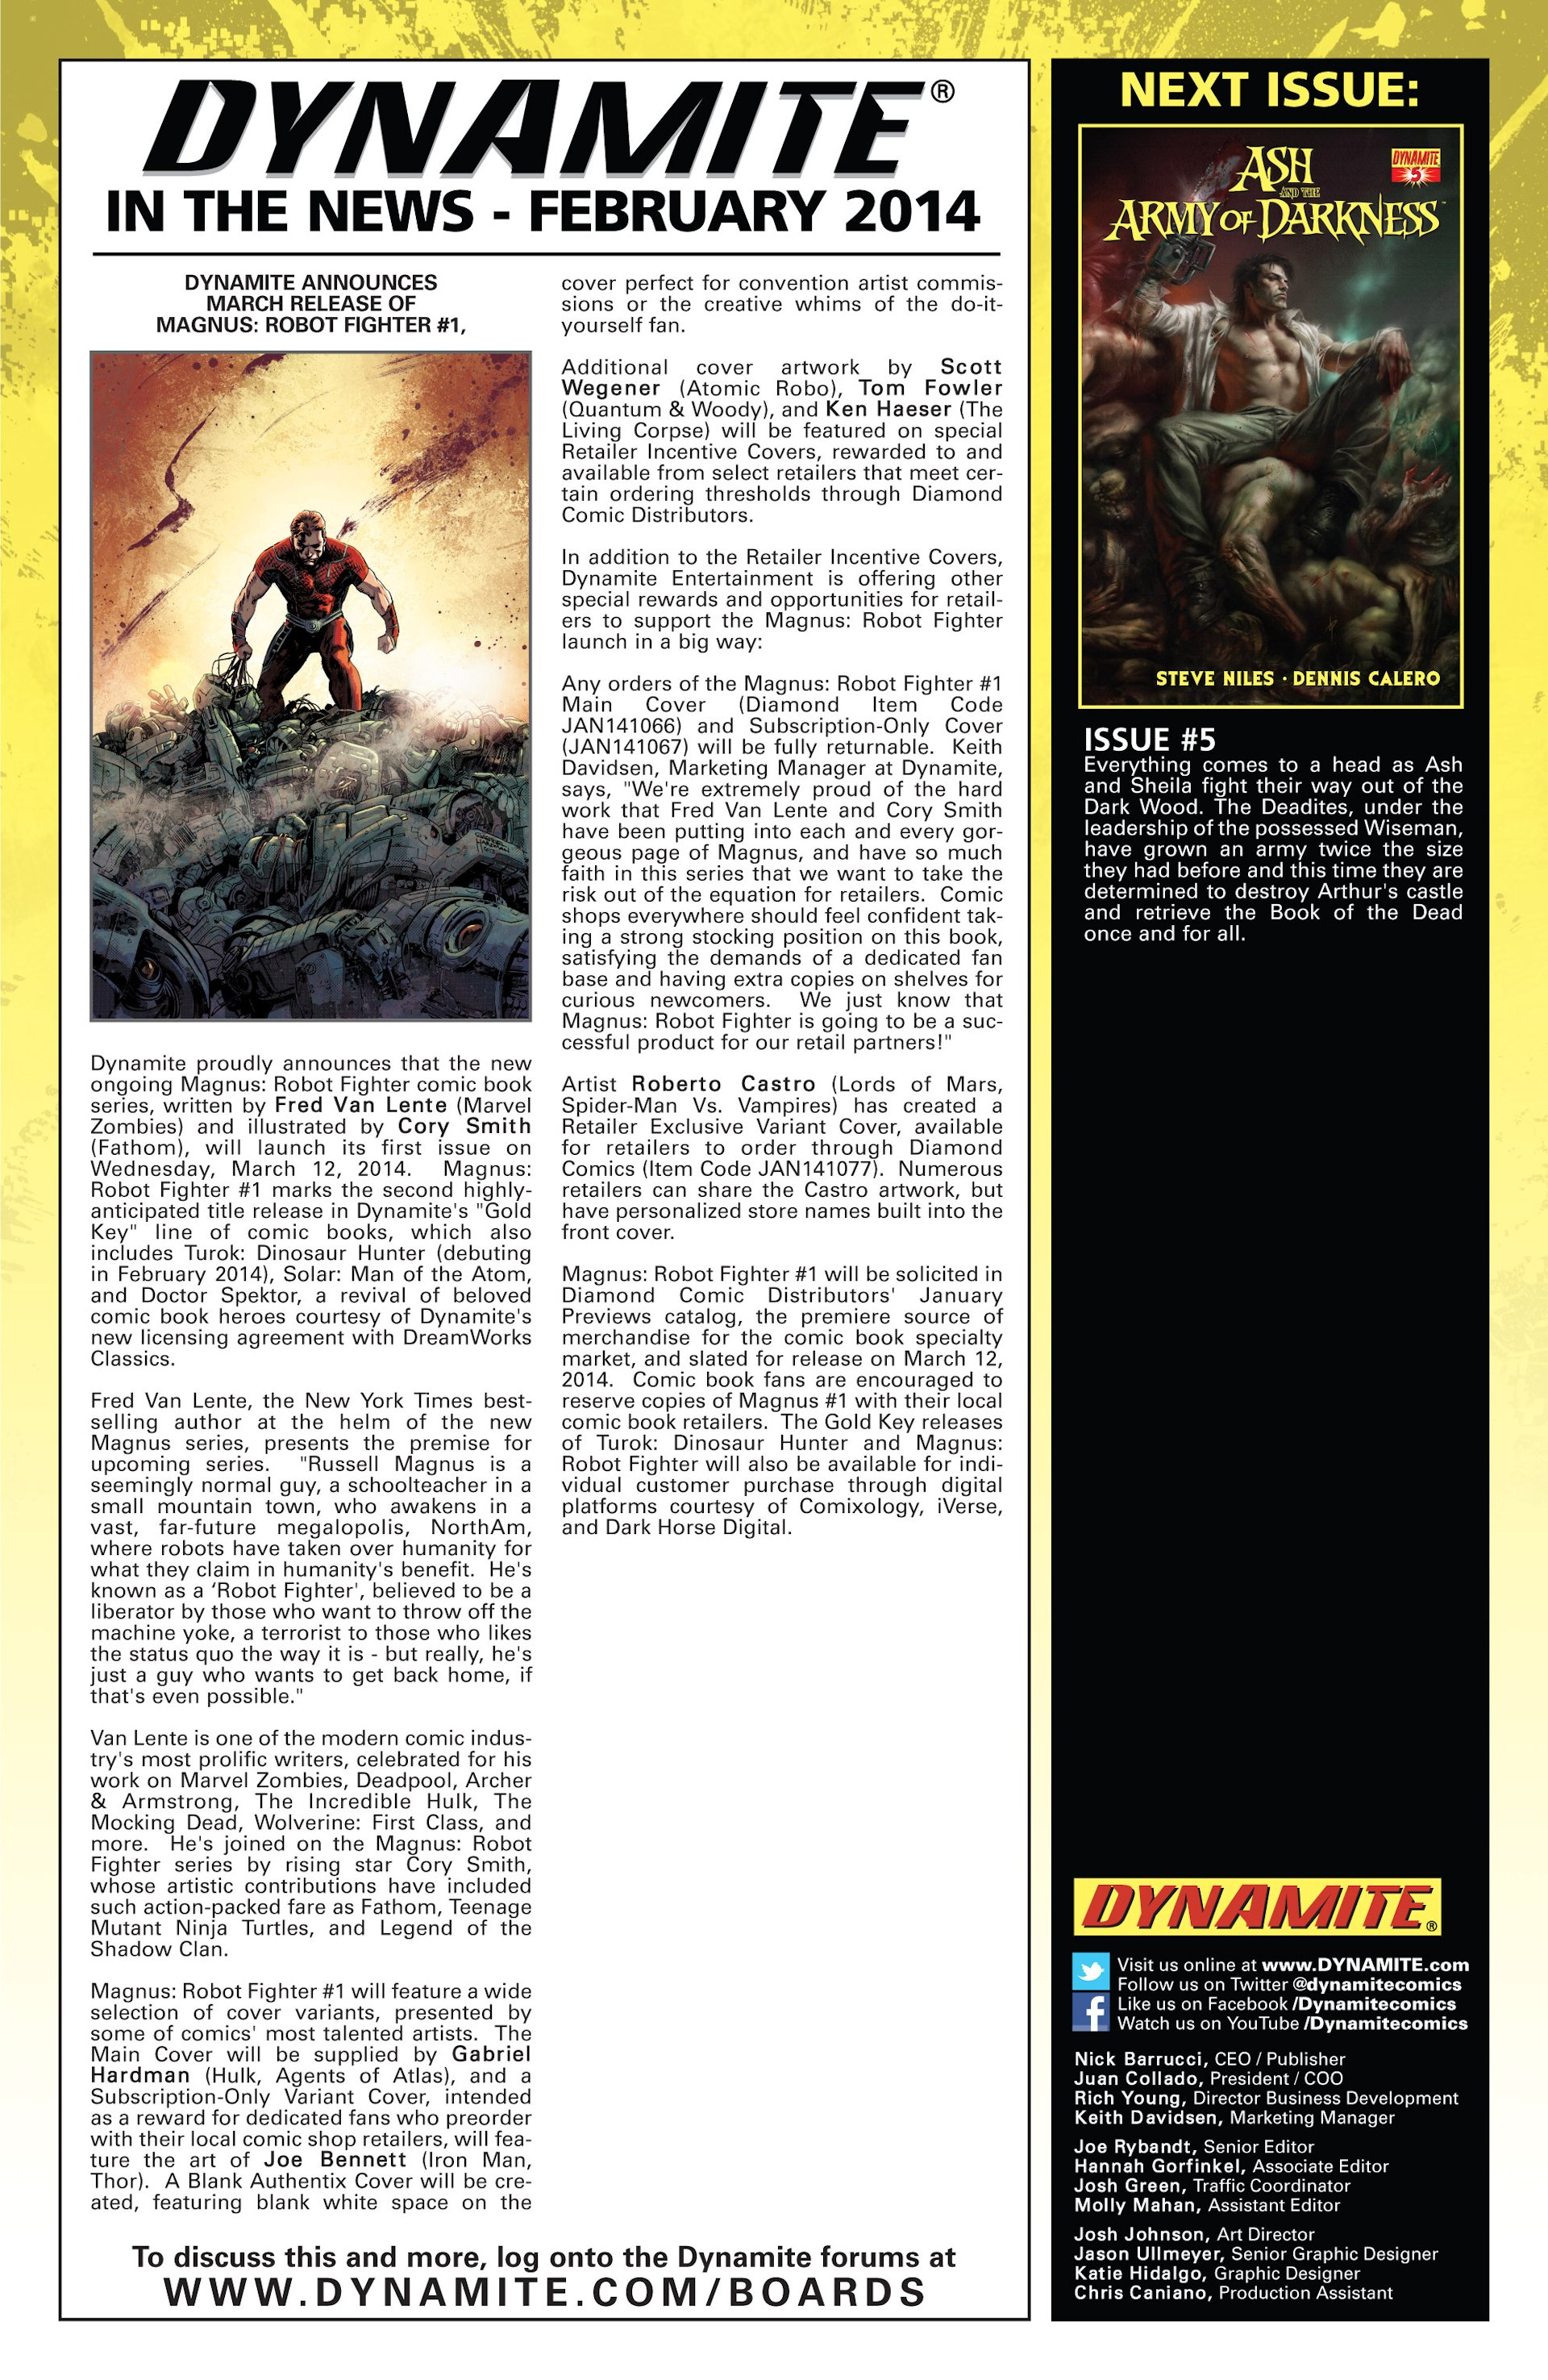 Read online Ash and the Army of Darkness comic -  Issue #4 - 23